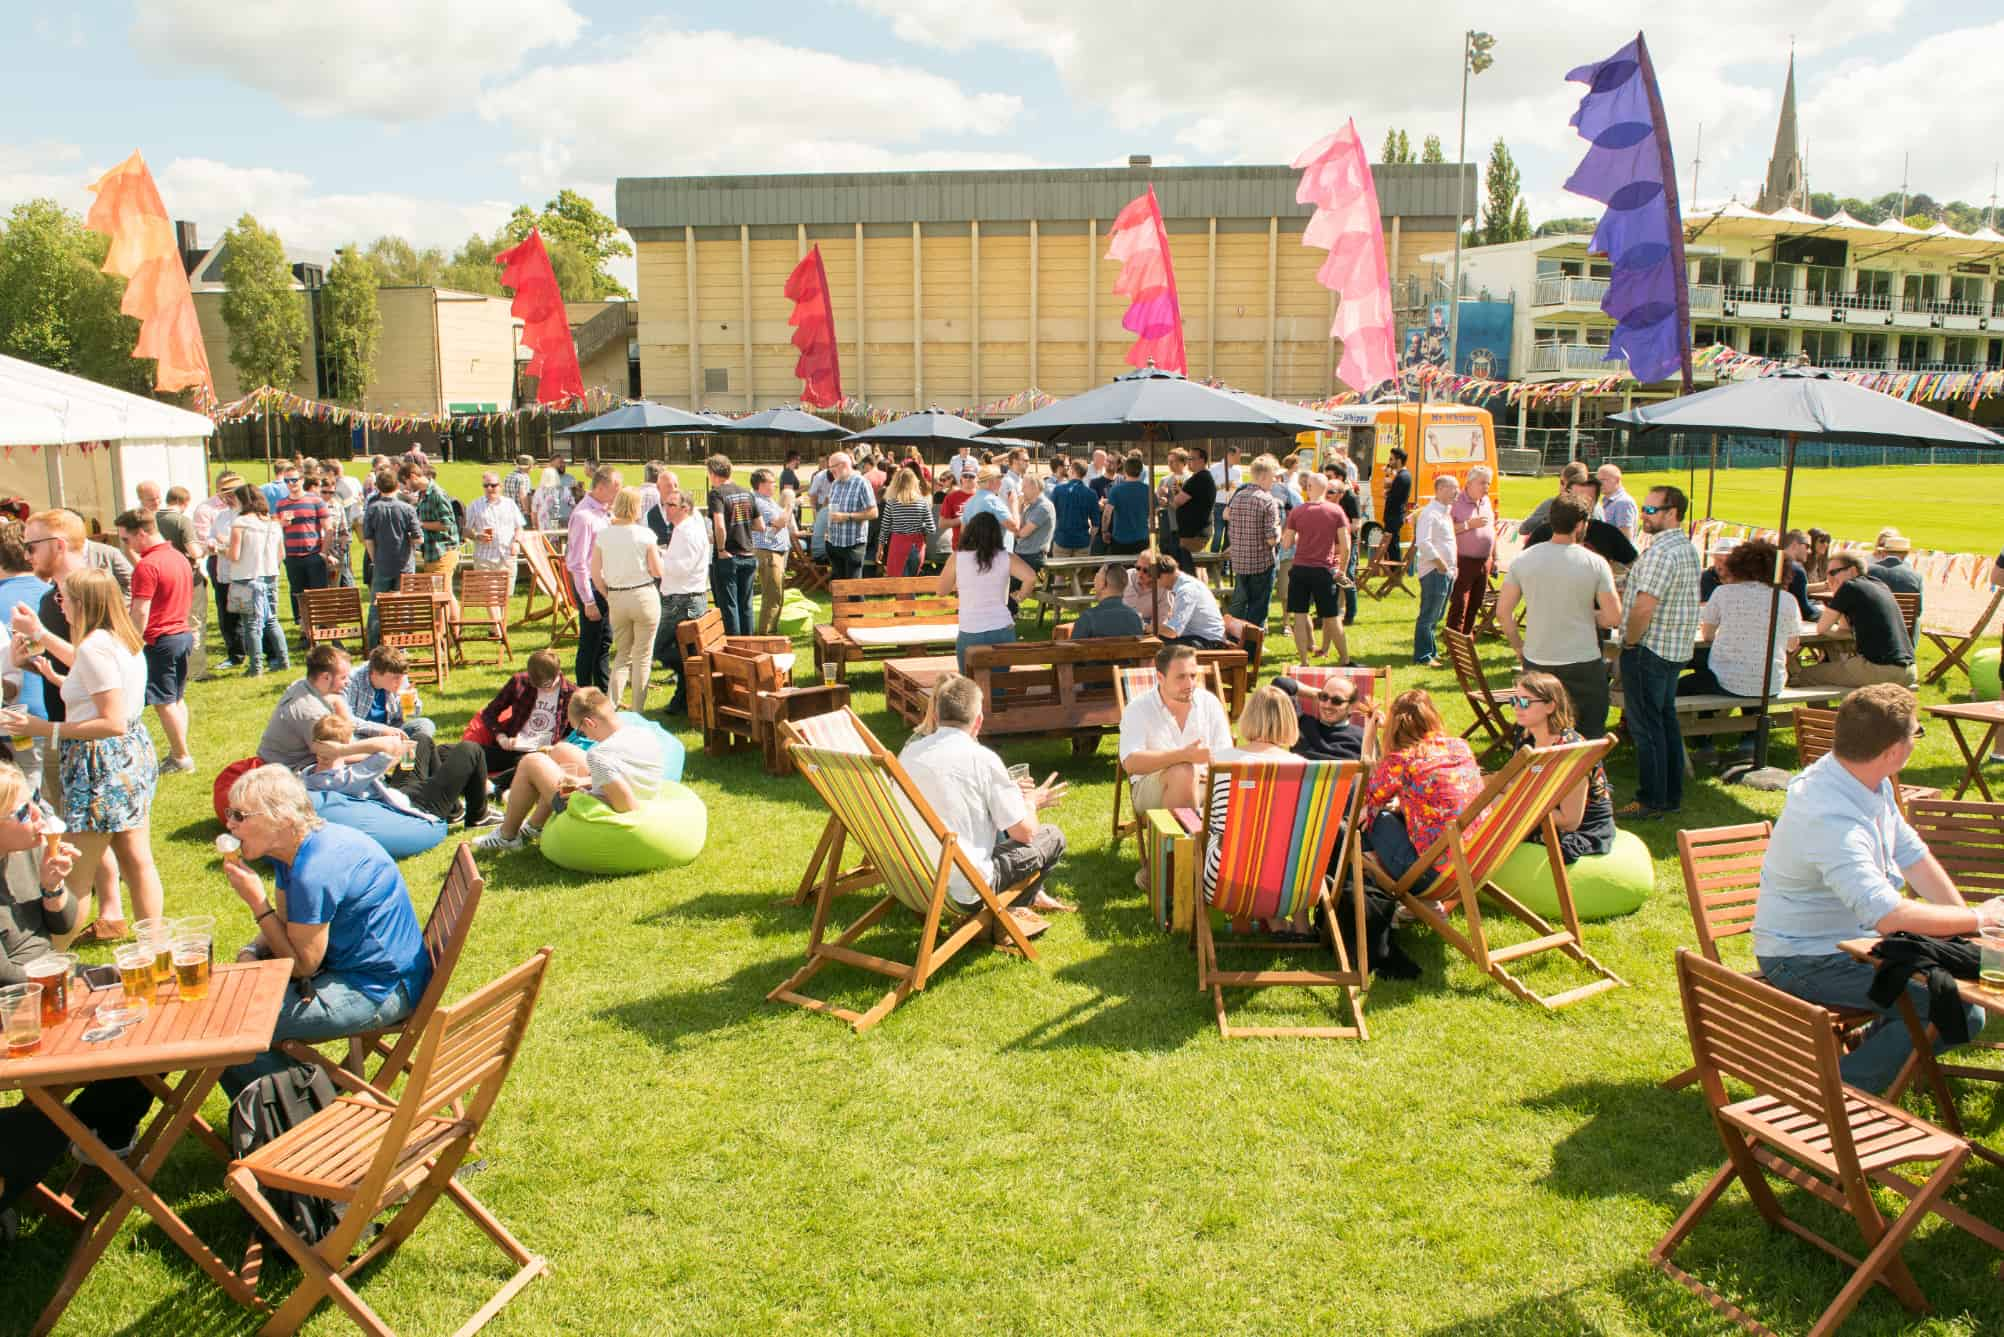 Festival flags deckchairs corporate event